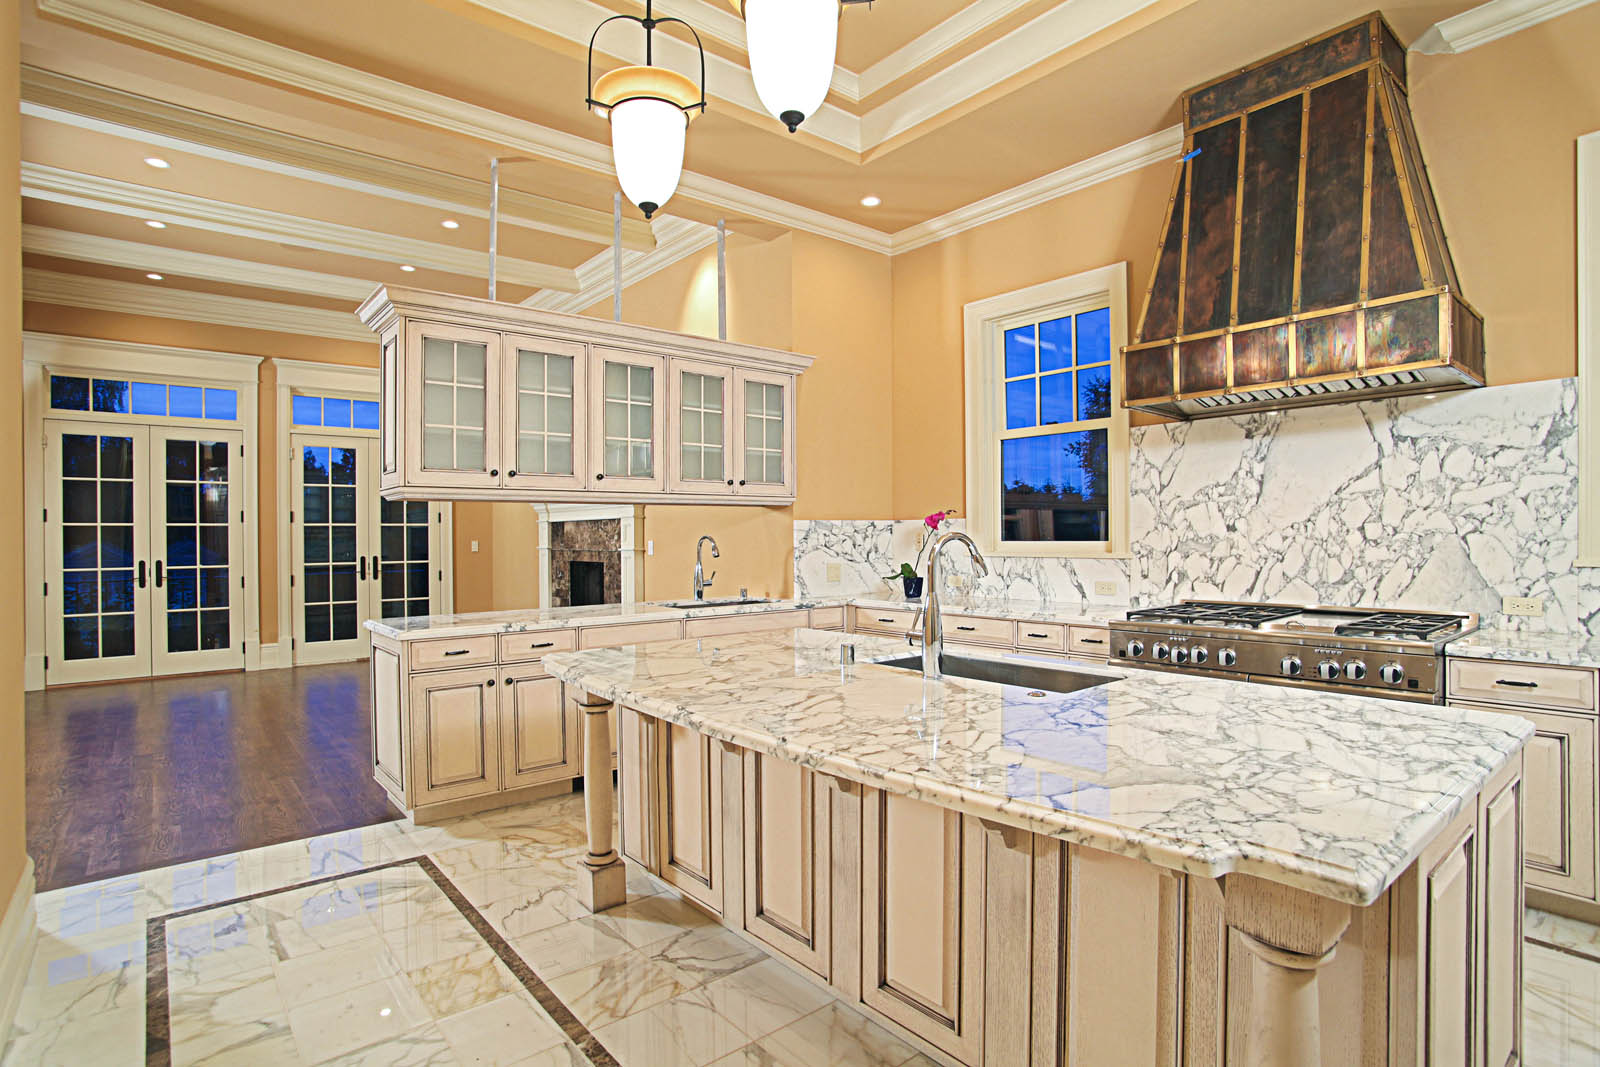 Tile Floors For Kitchen Tile Flooring For Kitchens All About Flooring Designs